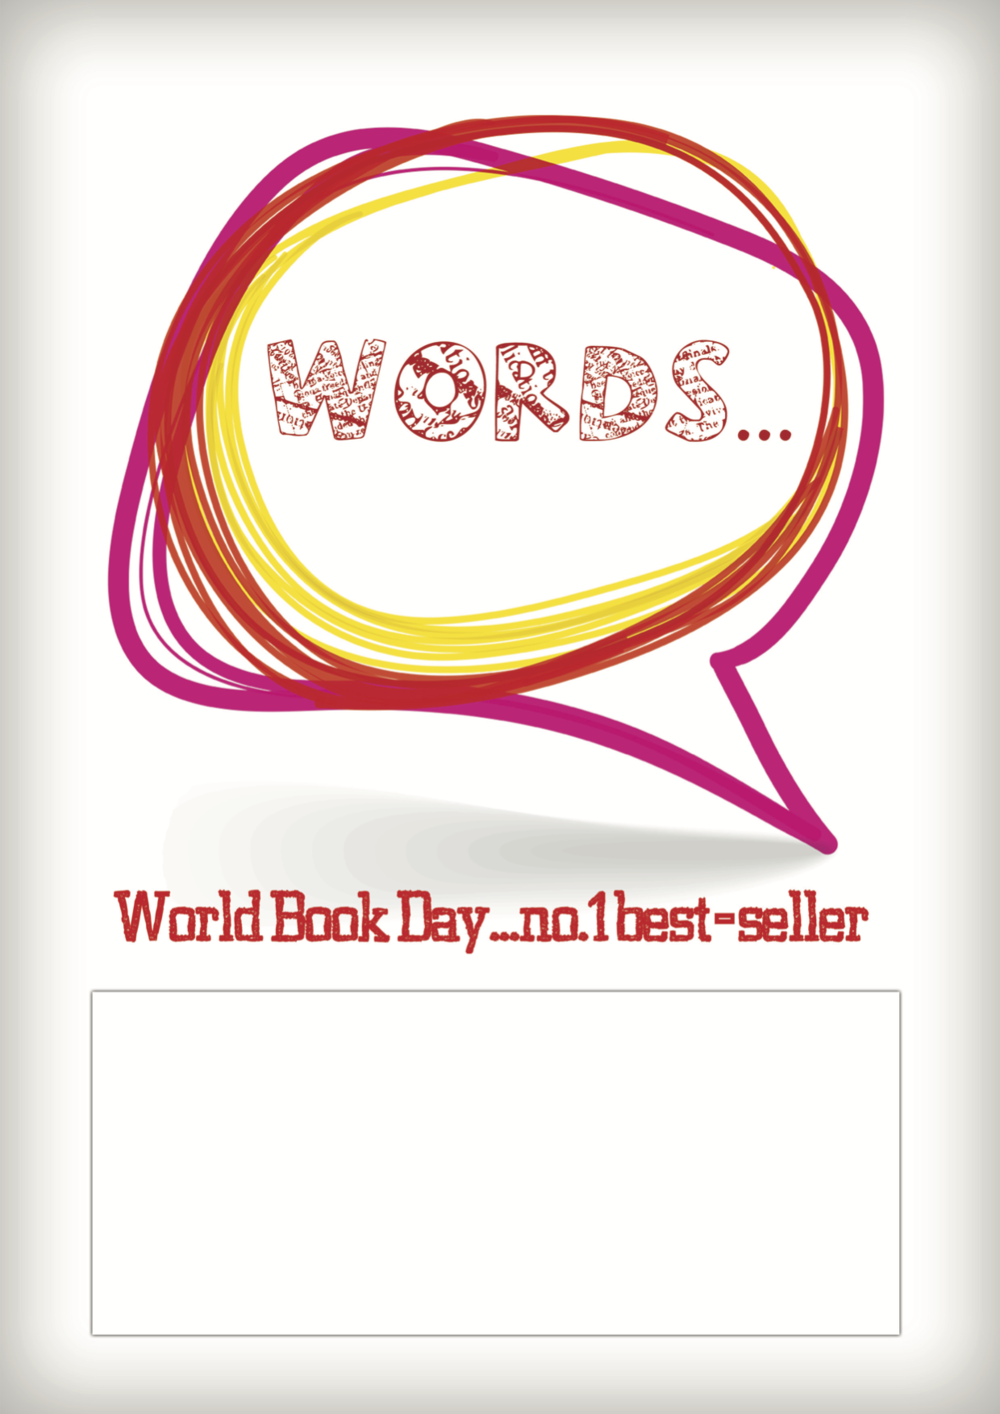 Words-Poster-World-Book-Day.png